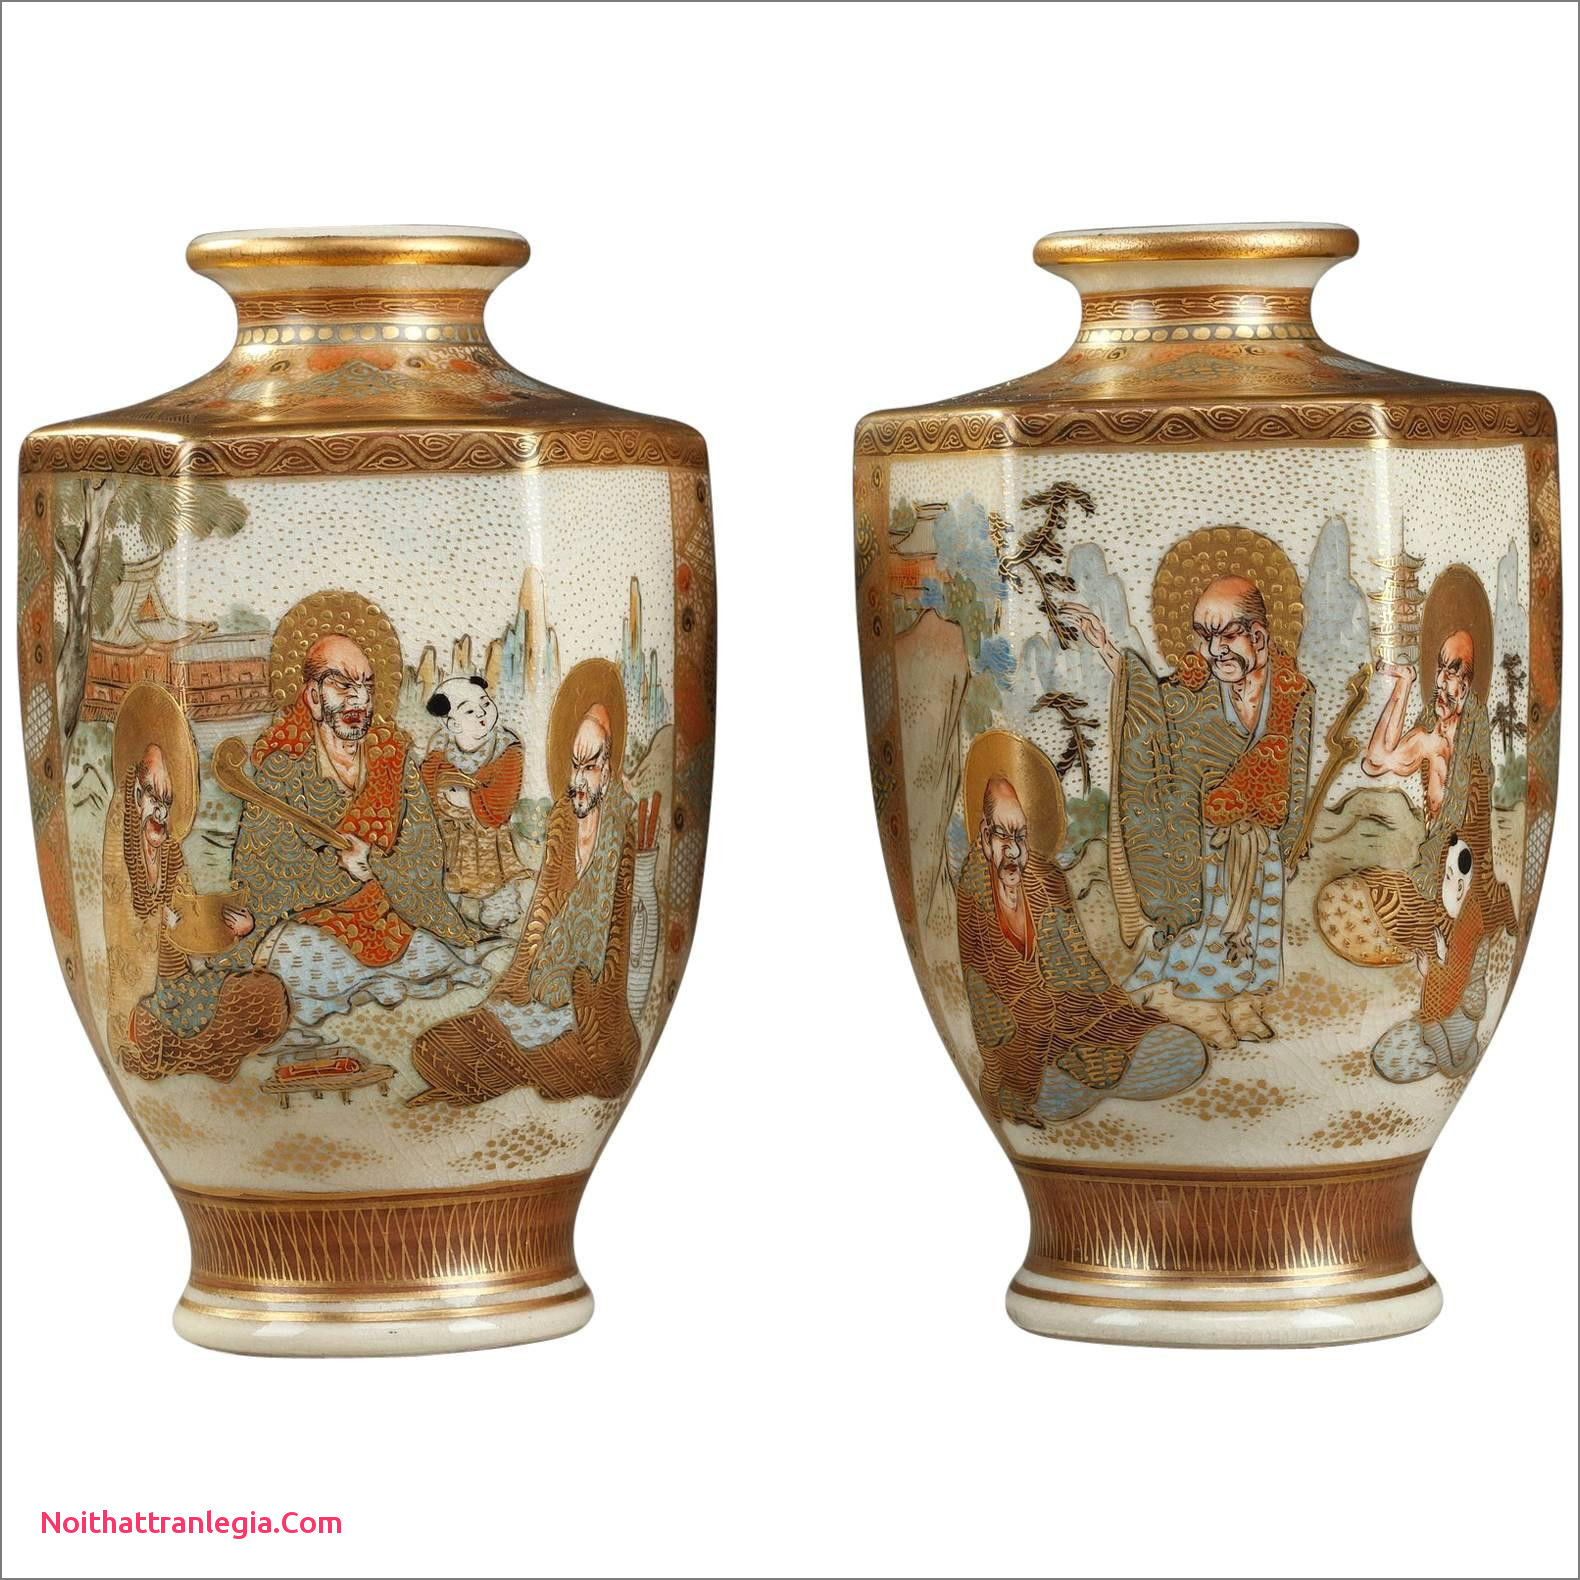 cheap ceramic vases of 20 chinese antique vase noithattranlegia vases design with chinese ginger jar table lamps elegant pair 20th century general porcelain trenton nj usa industrial